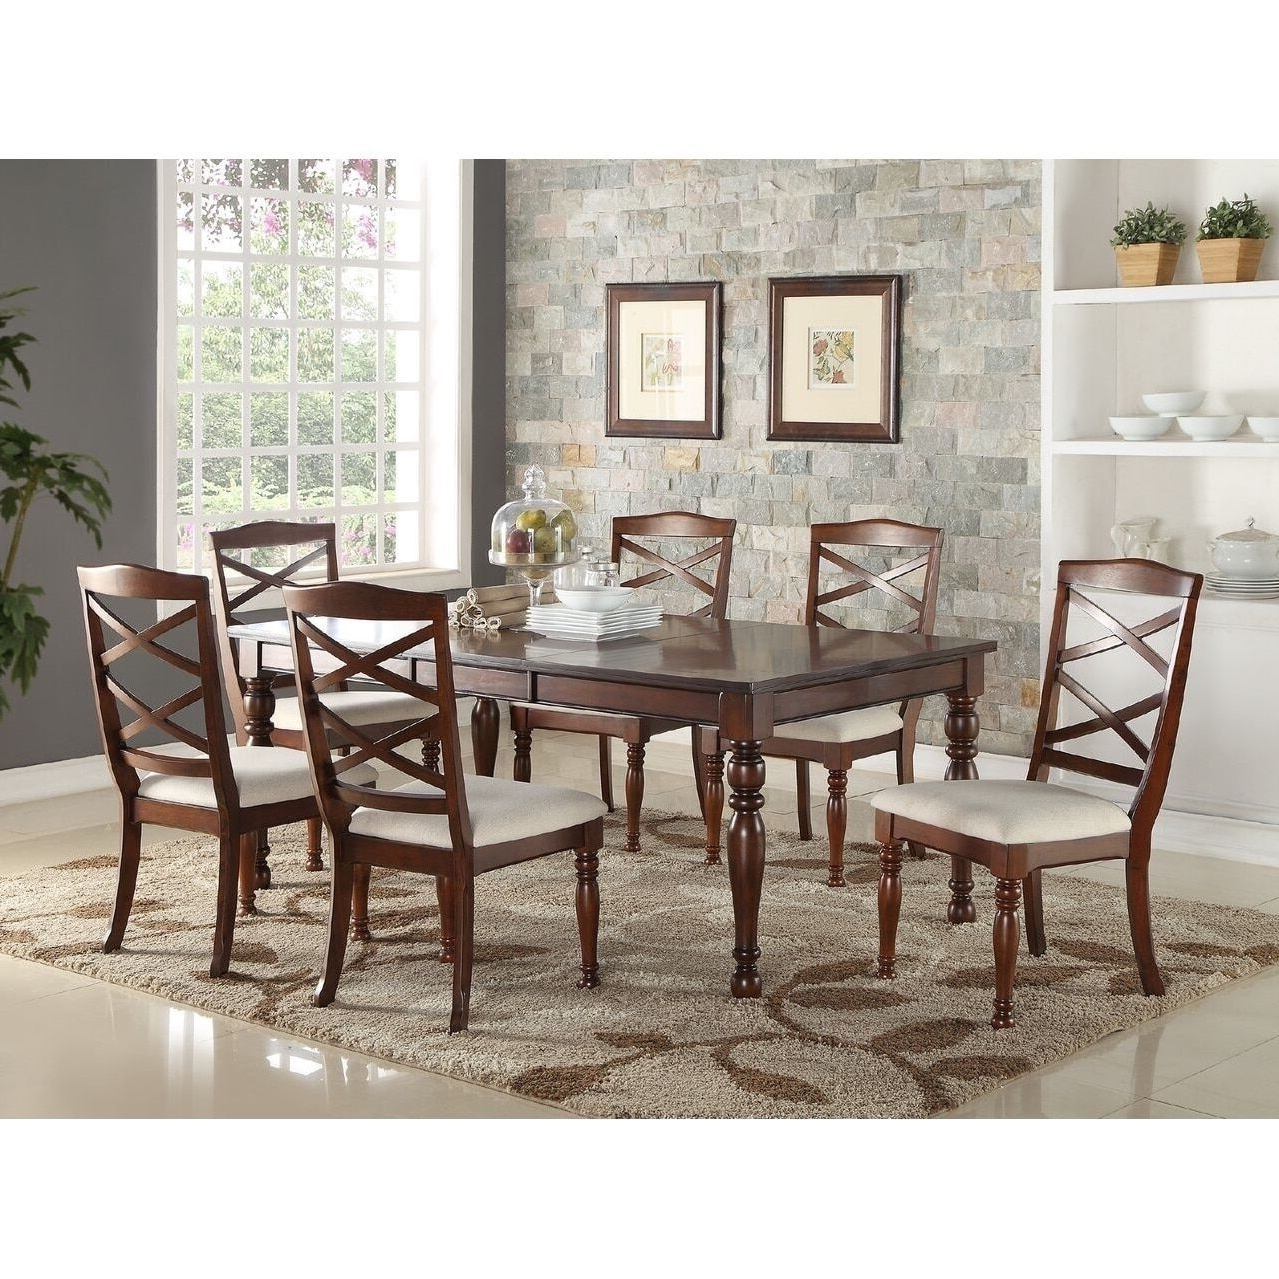 Poundex Tartar 7 Piece Traditional Dining Set (Cherry - Cherry with regard to Favorite Traditional Dining Tables